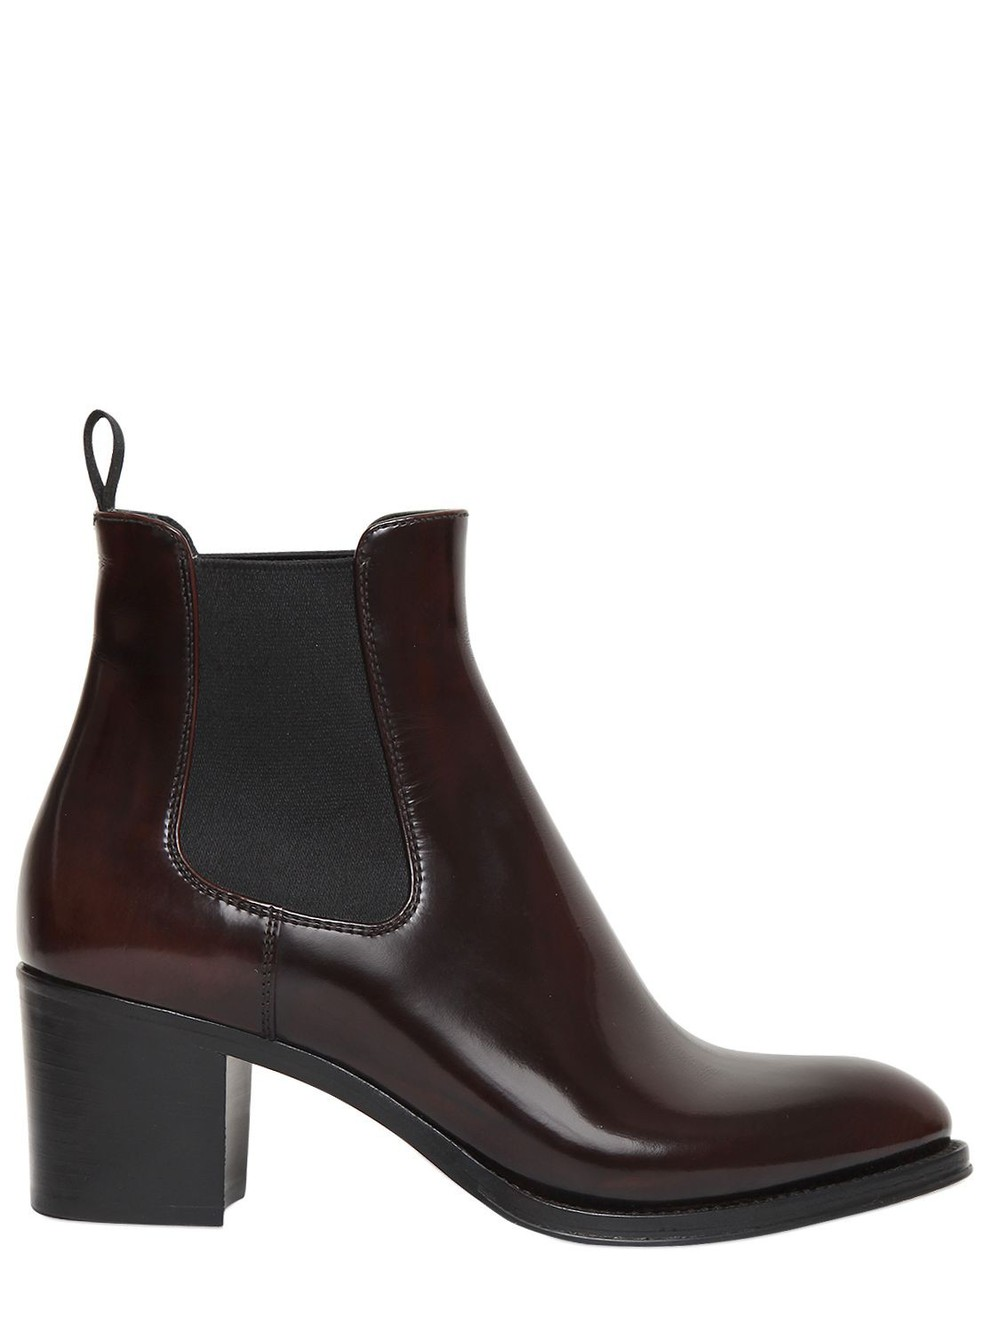 CHURCH'S 55mm Shirley Brushed Leather Ankle Boots